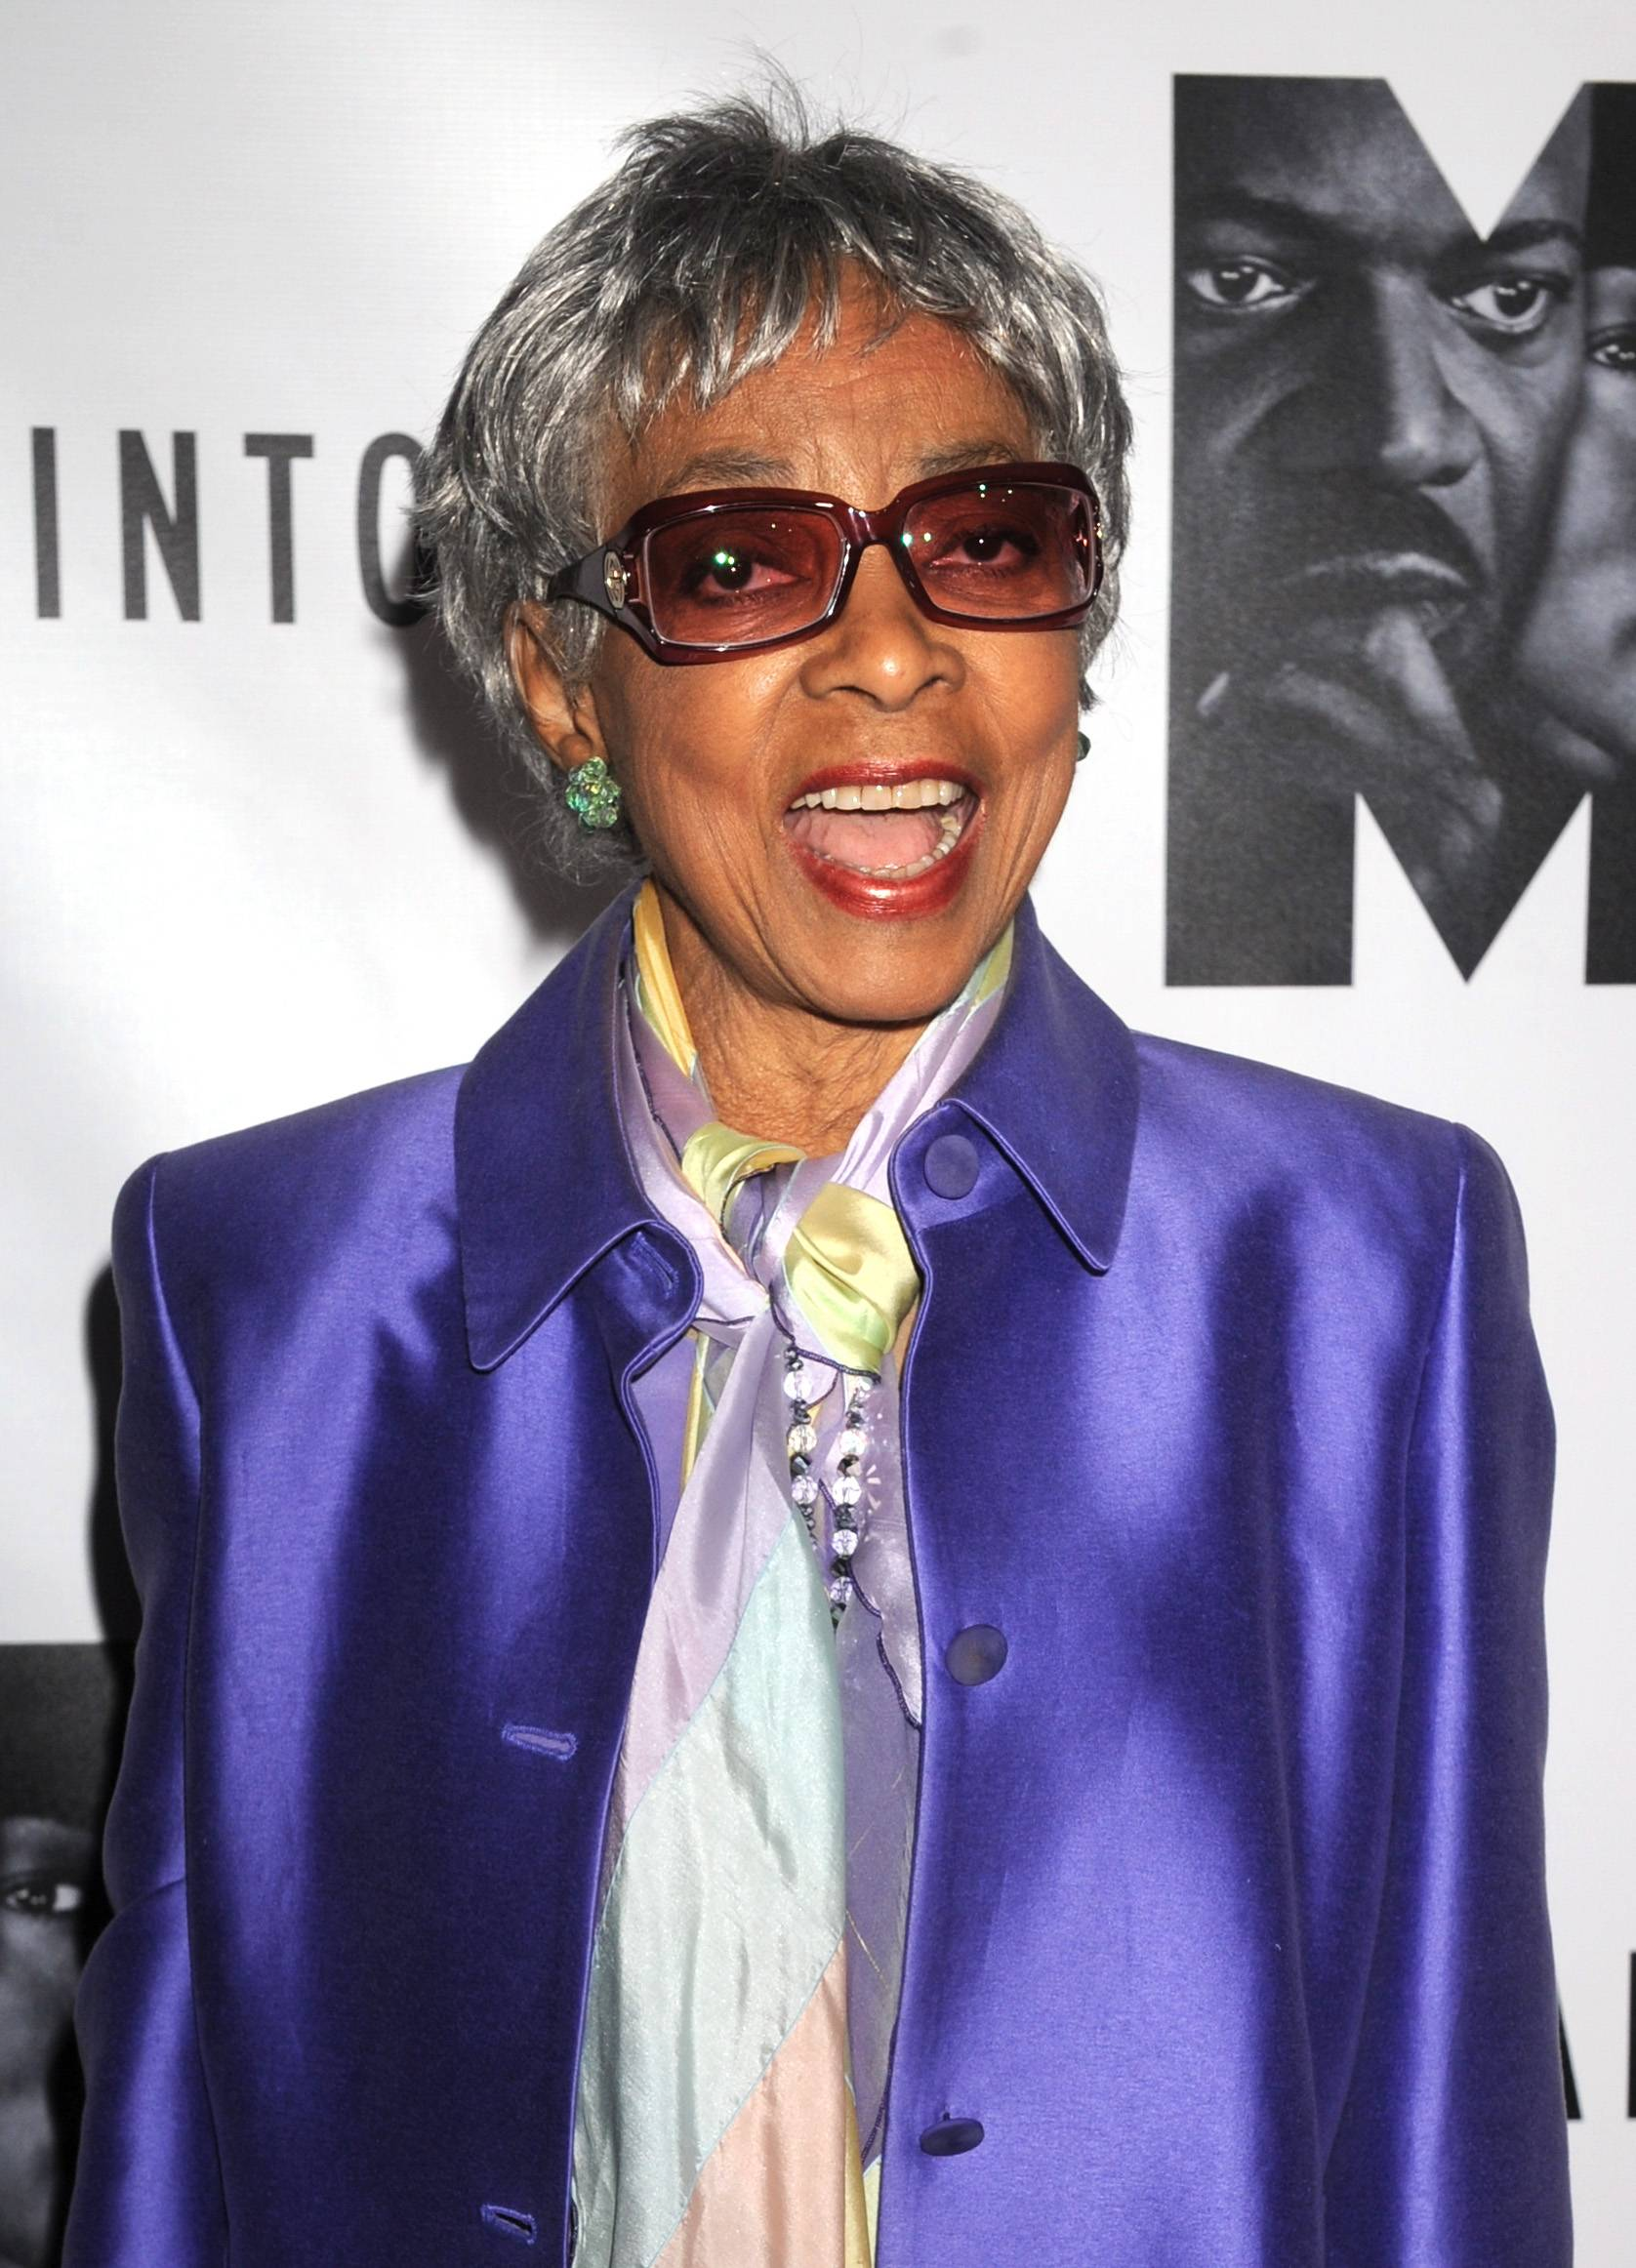 Ruby Dee, shown here in 2011, has died at age 91, according to her daughter.